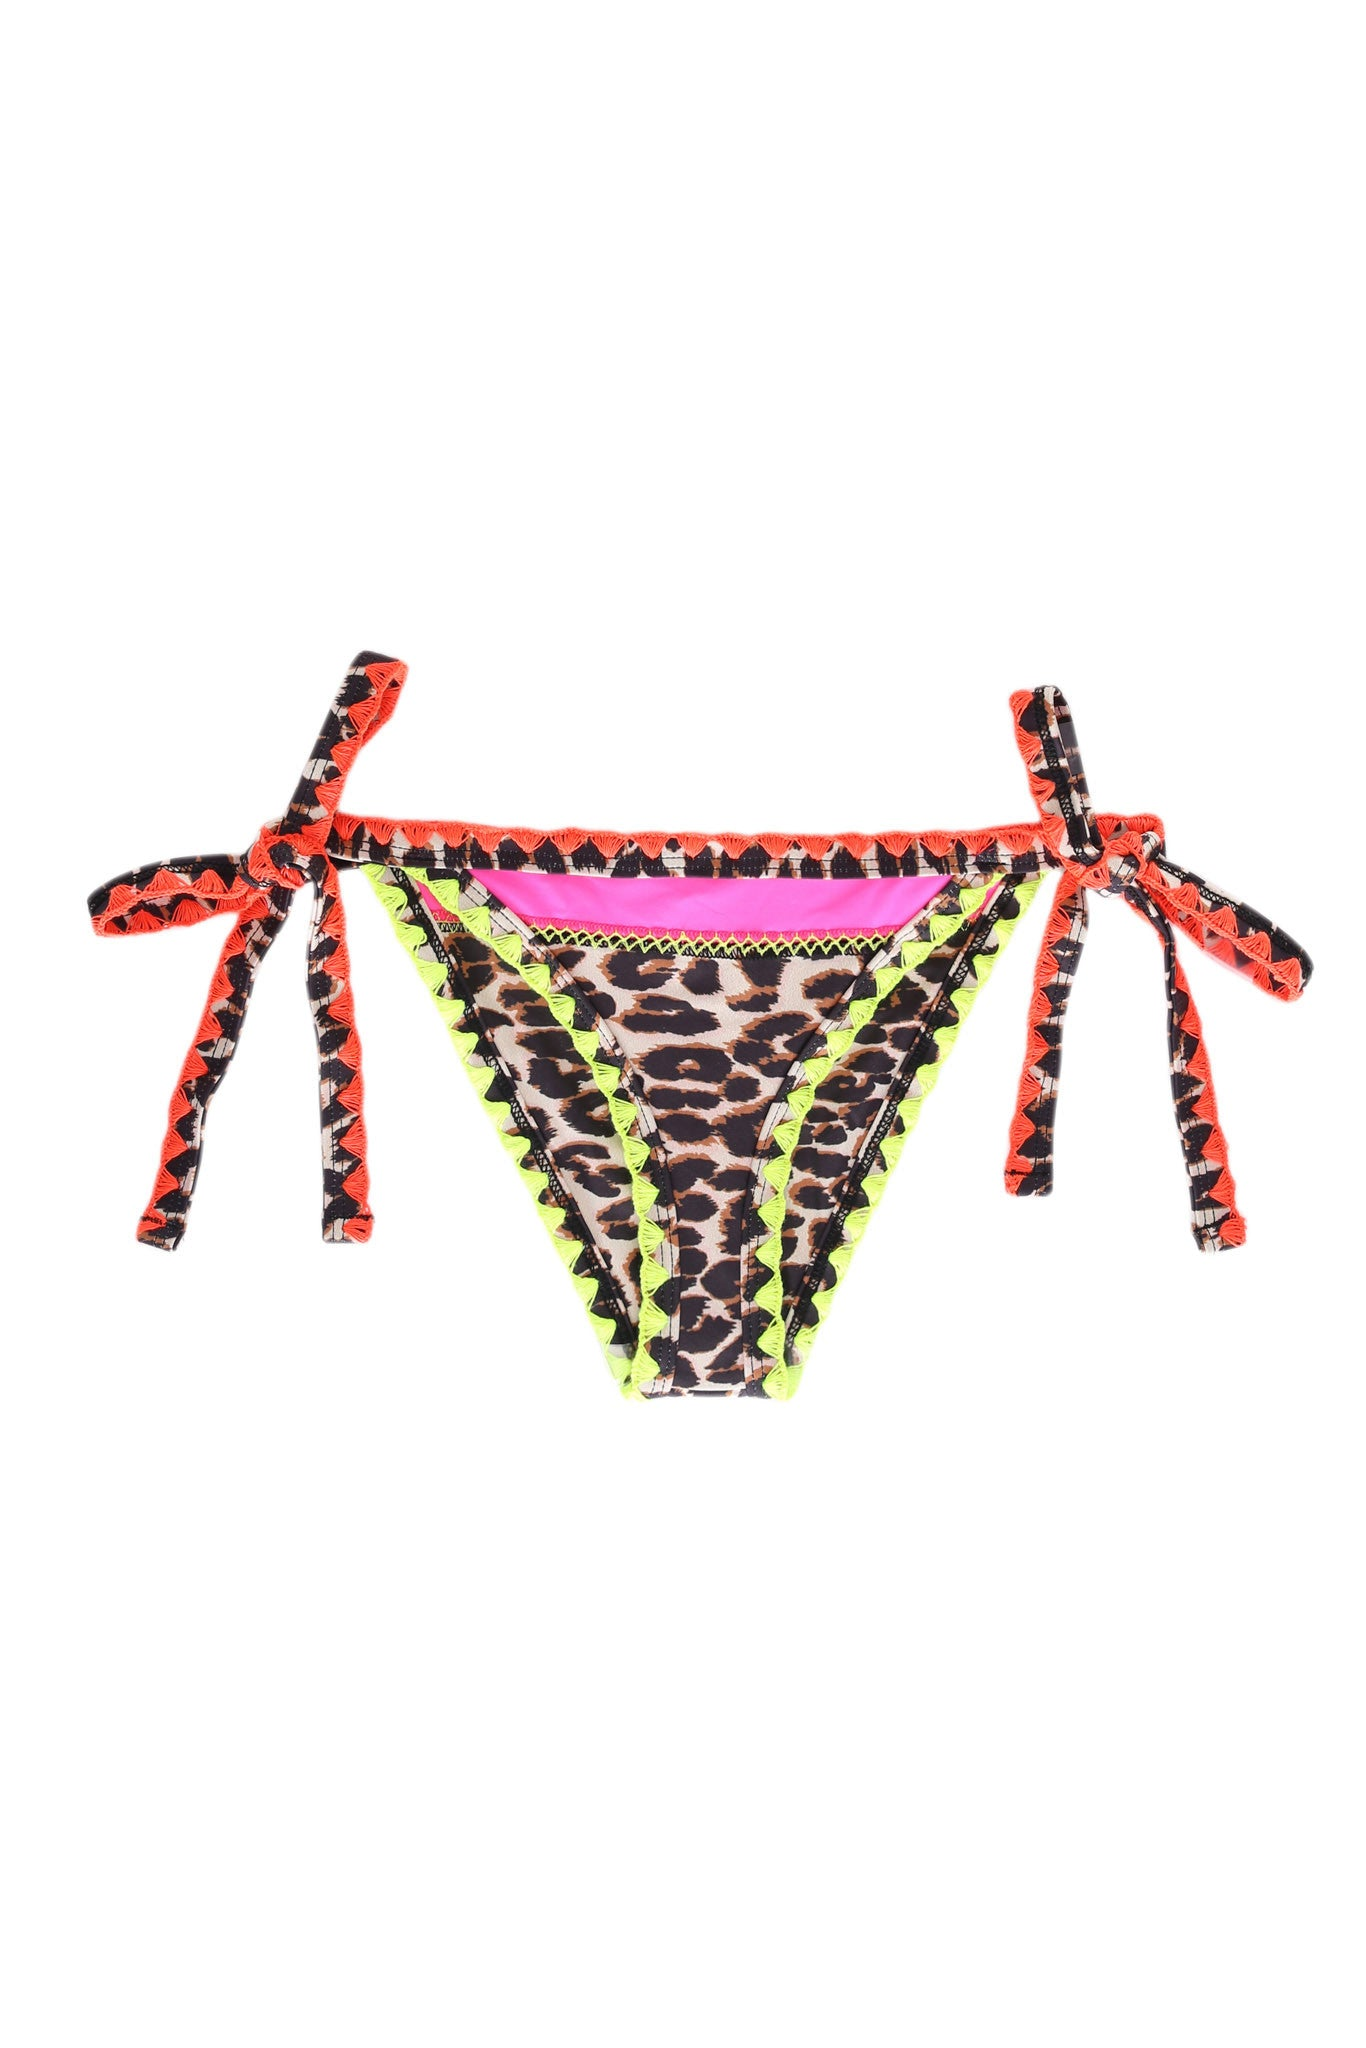 The Tease Tie Side Bottom (Electric Cheetah)